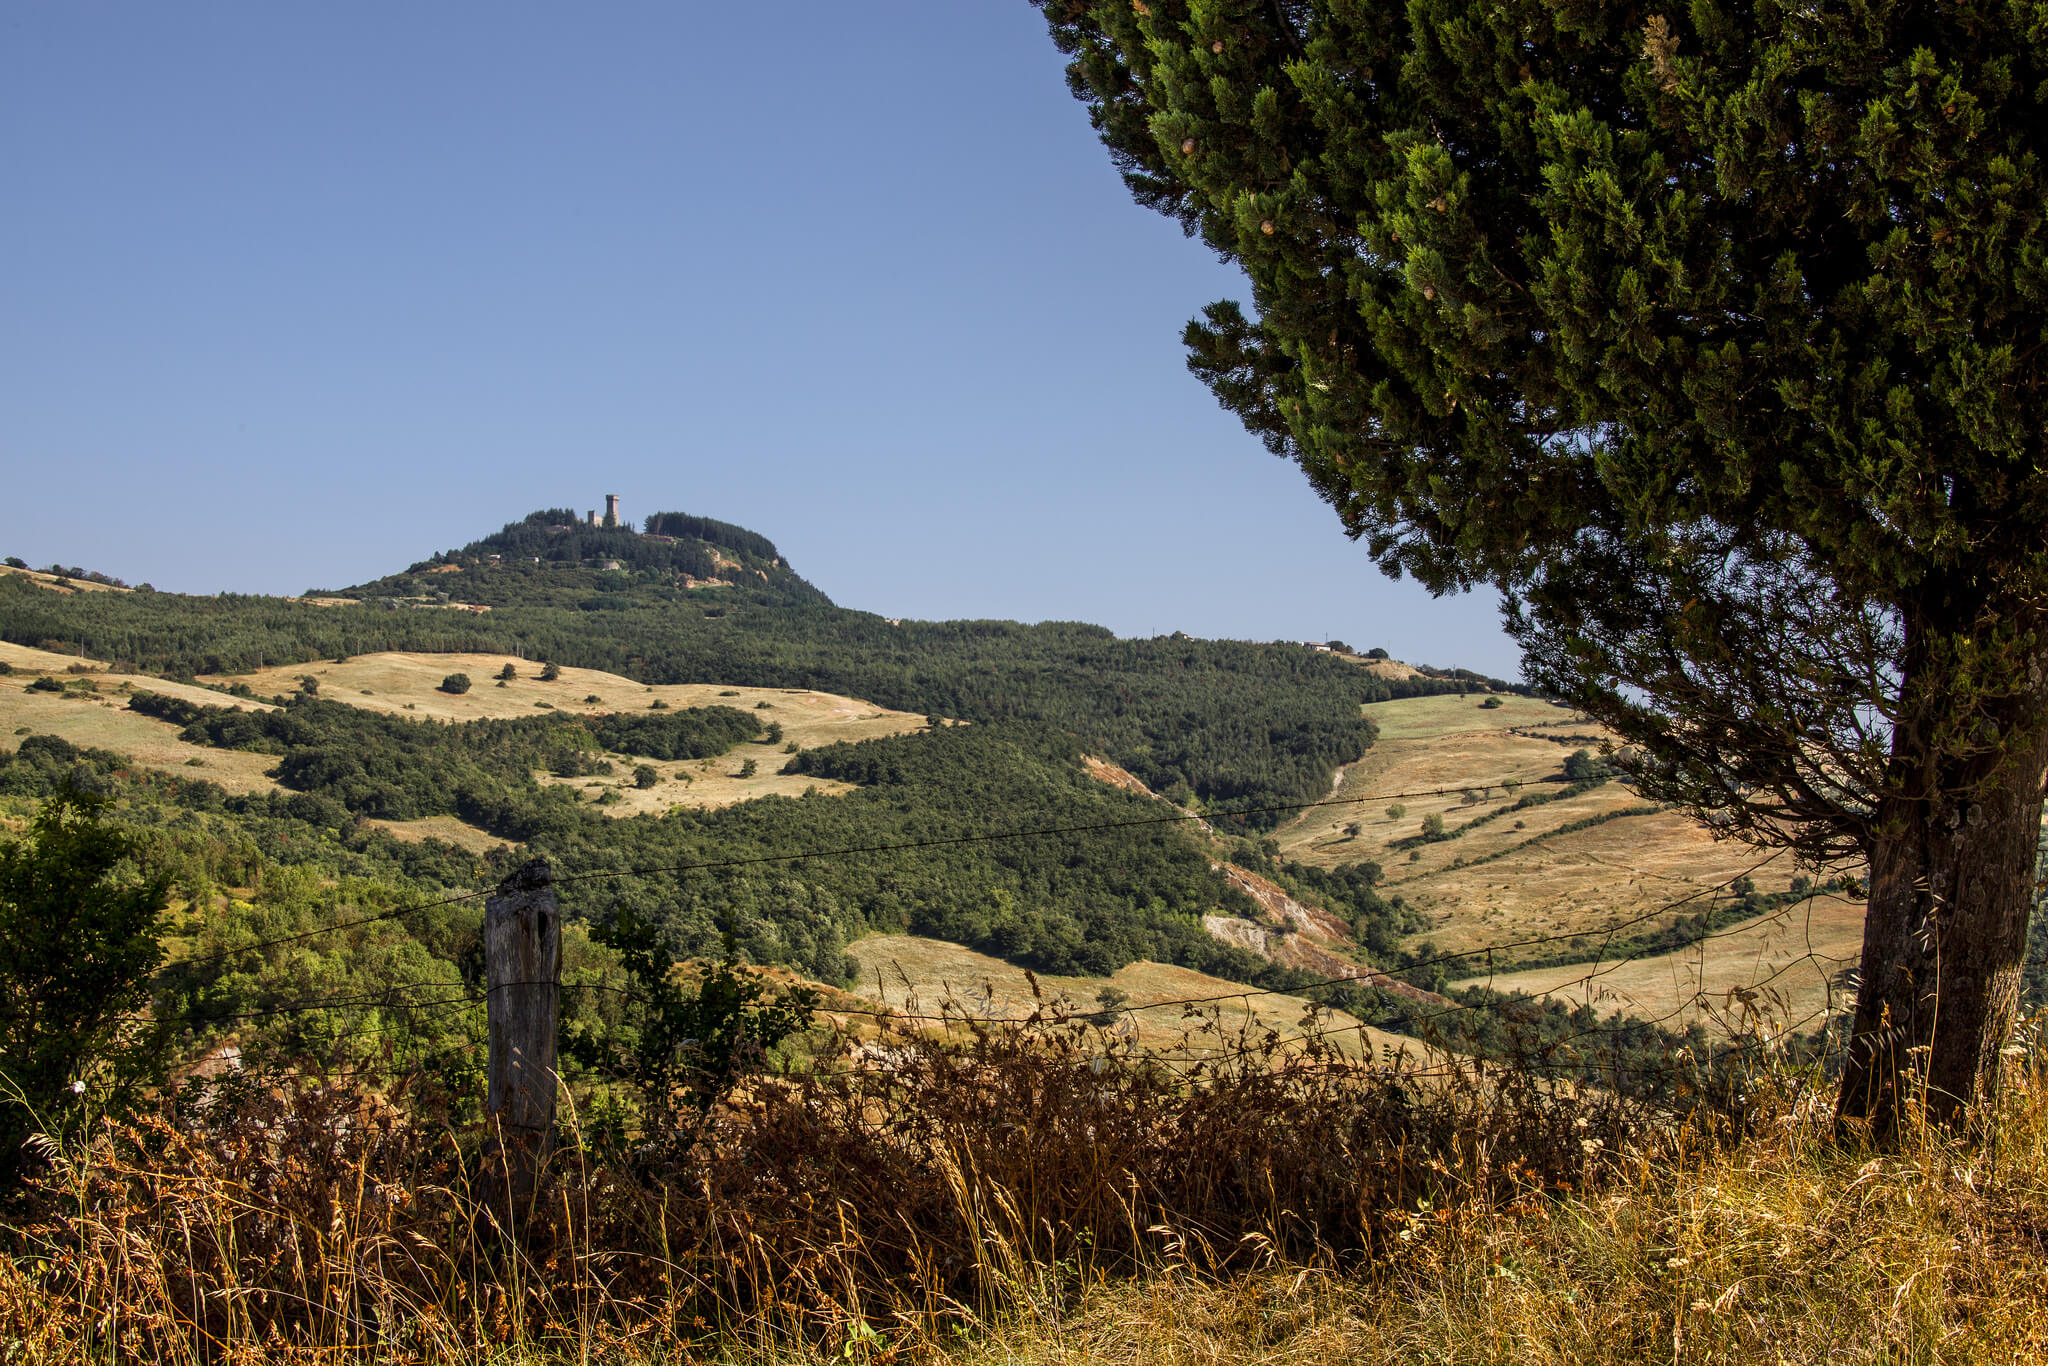 A hill landscape of Tuscany, where woods and fields alternate. At the bottom, on the left there is the hill where Radicofani rises